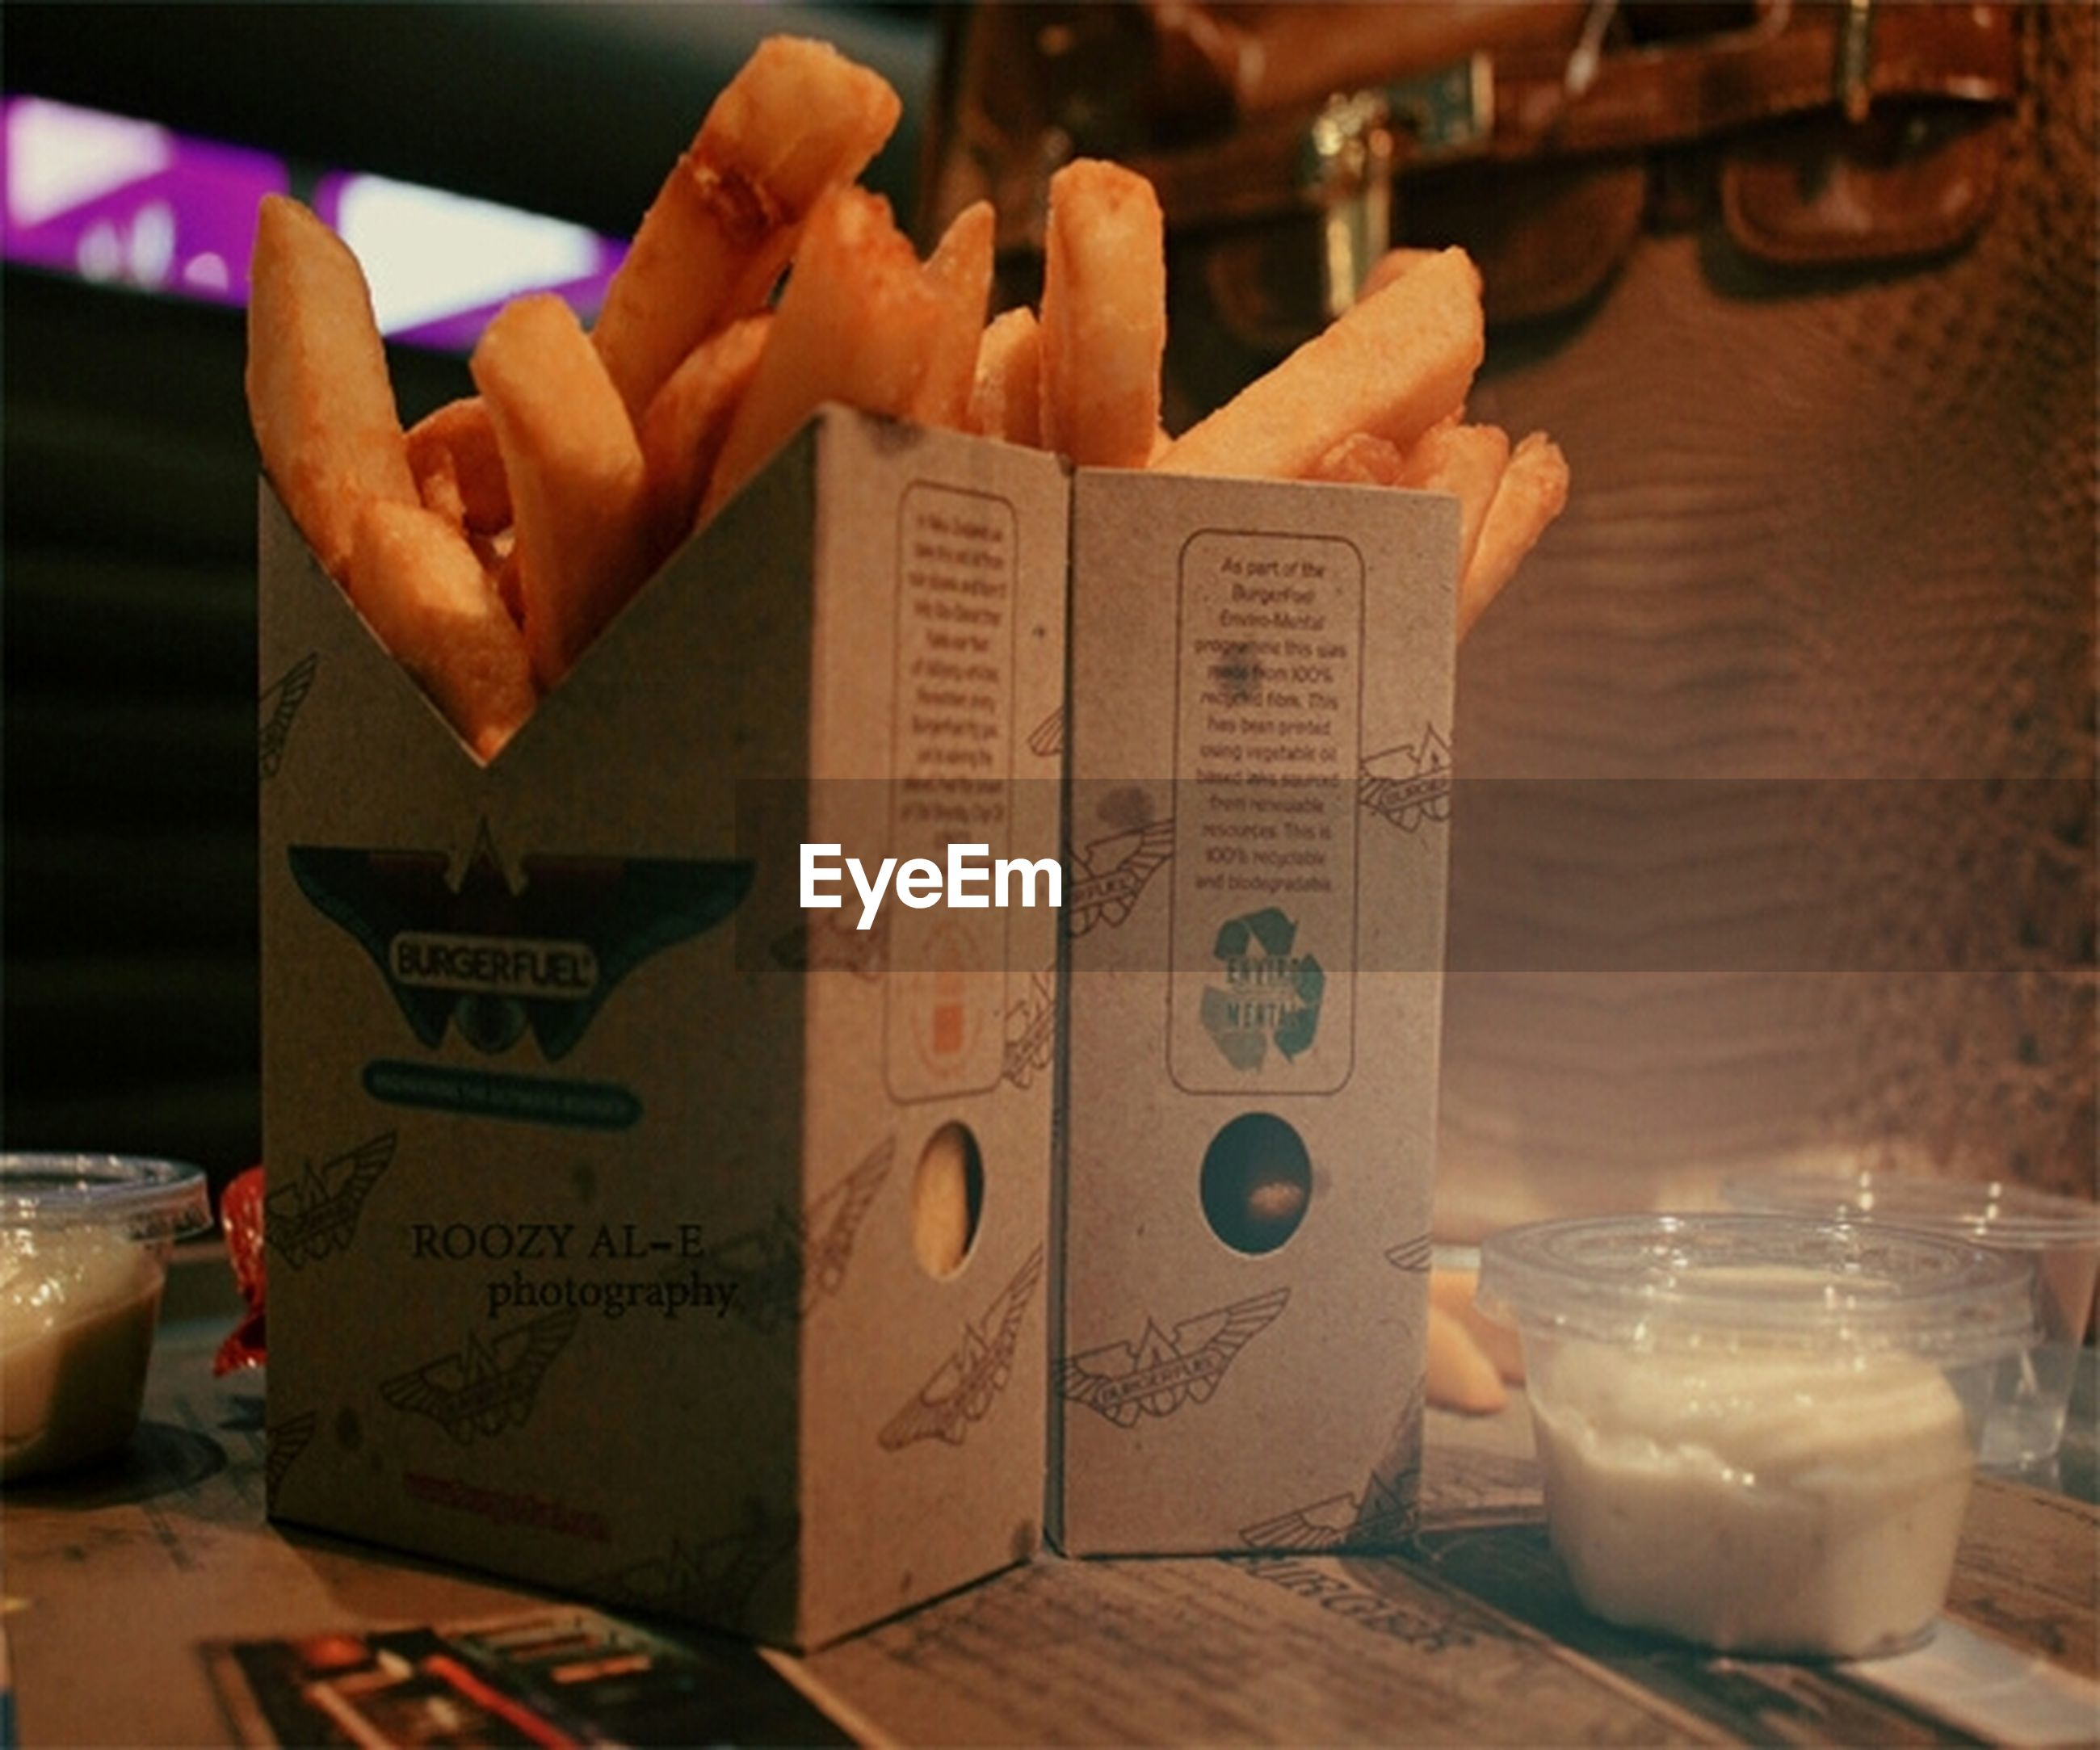 text, indoors, western script, communication, person, paper, non-western script, close-up, table, part of, focus on foreground, holding, food and drink, art and craft, art, creativity, human finger